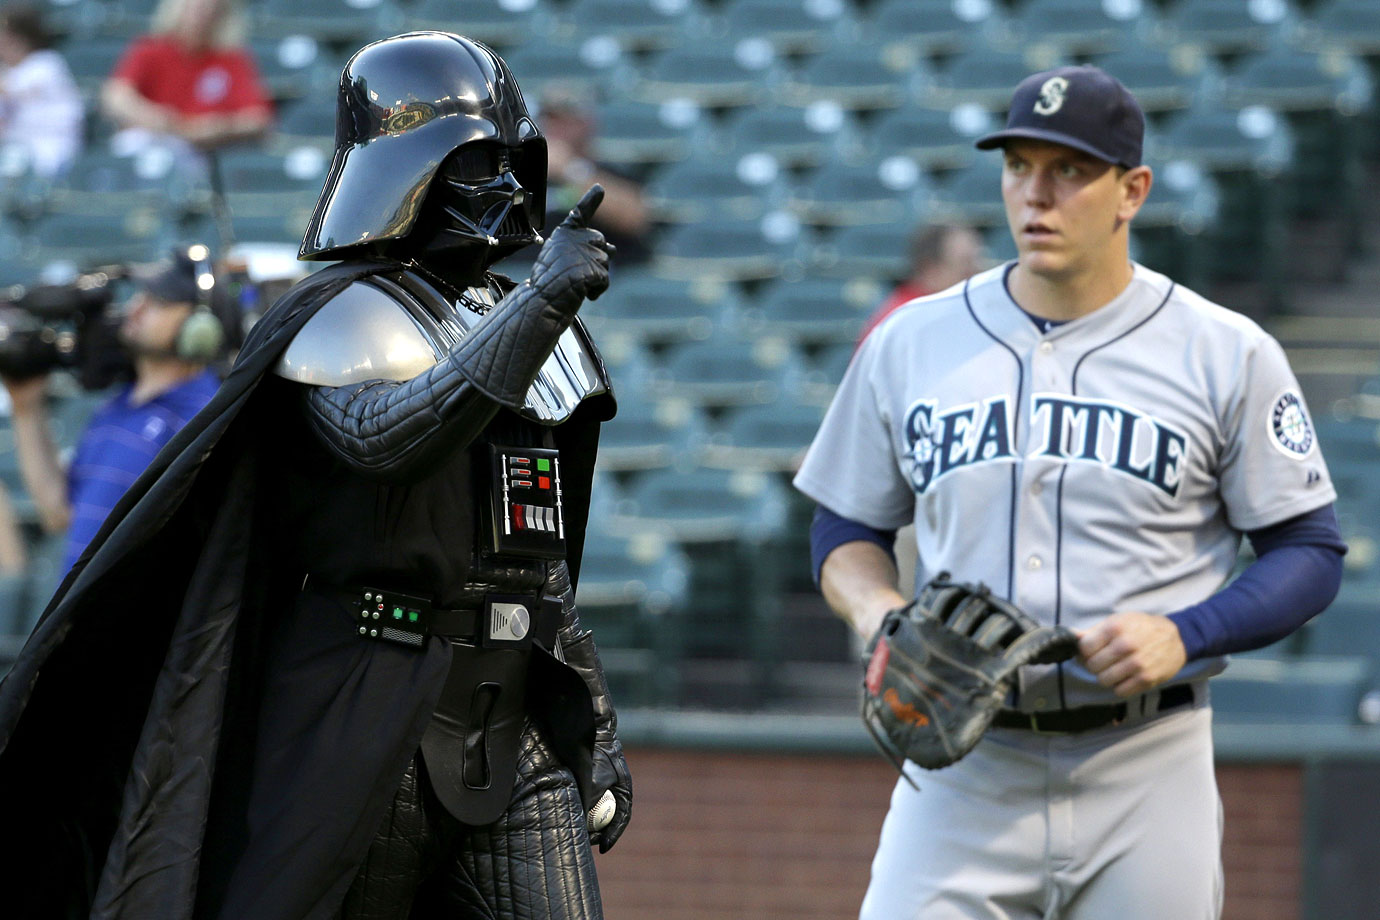 Darth Vader points to fans as he walks by Seattle Mariners first baseman Logan Morrison after throwing out the ceremonial first pitch before the Mariners game against the Texas Rangers on Sept. 5, 2014 at Rangers Ballpark in Arlington, Texas.